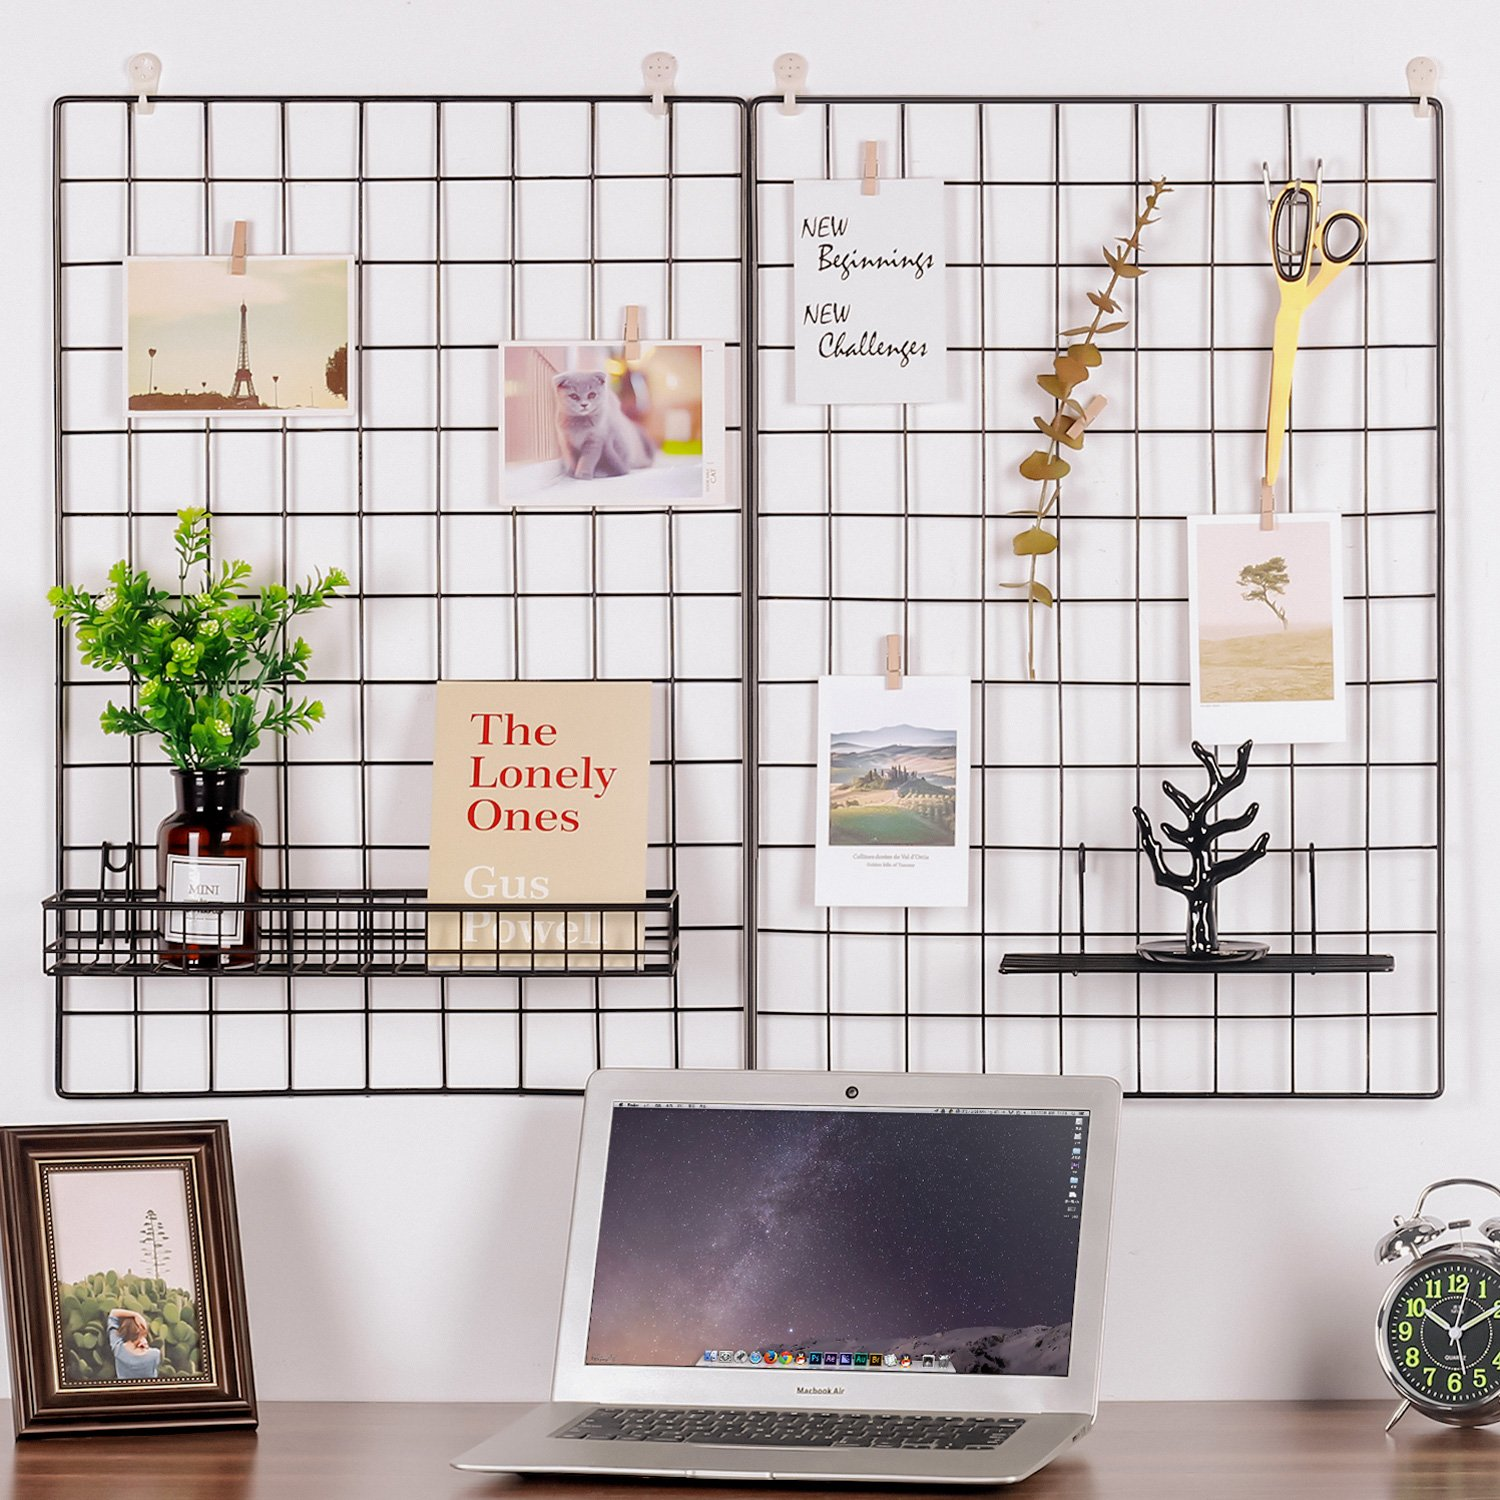 Kufox Painted Wire Wall Grid Panel,  Multifunction Photo Hanging Display and Wall Storage Organizer, Pack of 2, Size 25.6x17.7inch, Black